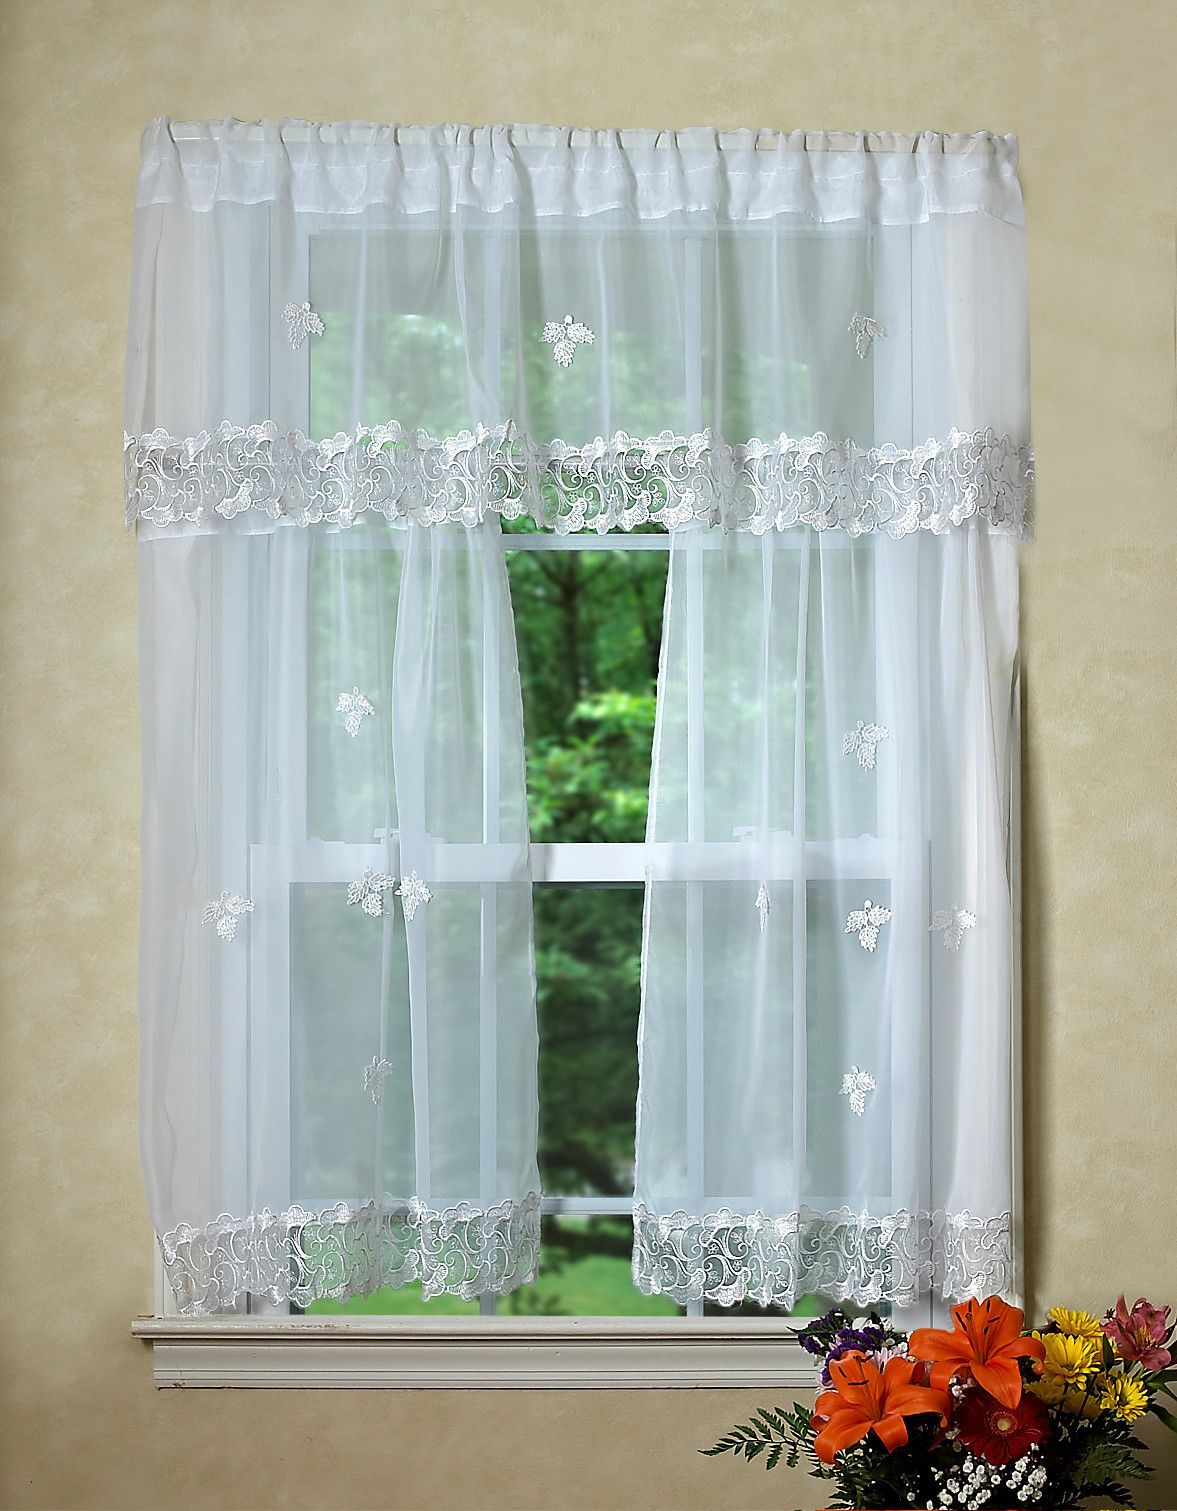 Lima sheer kitchen curtain valance and tier set products